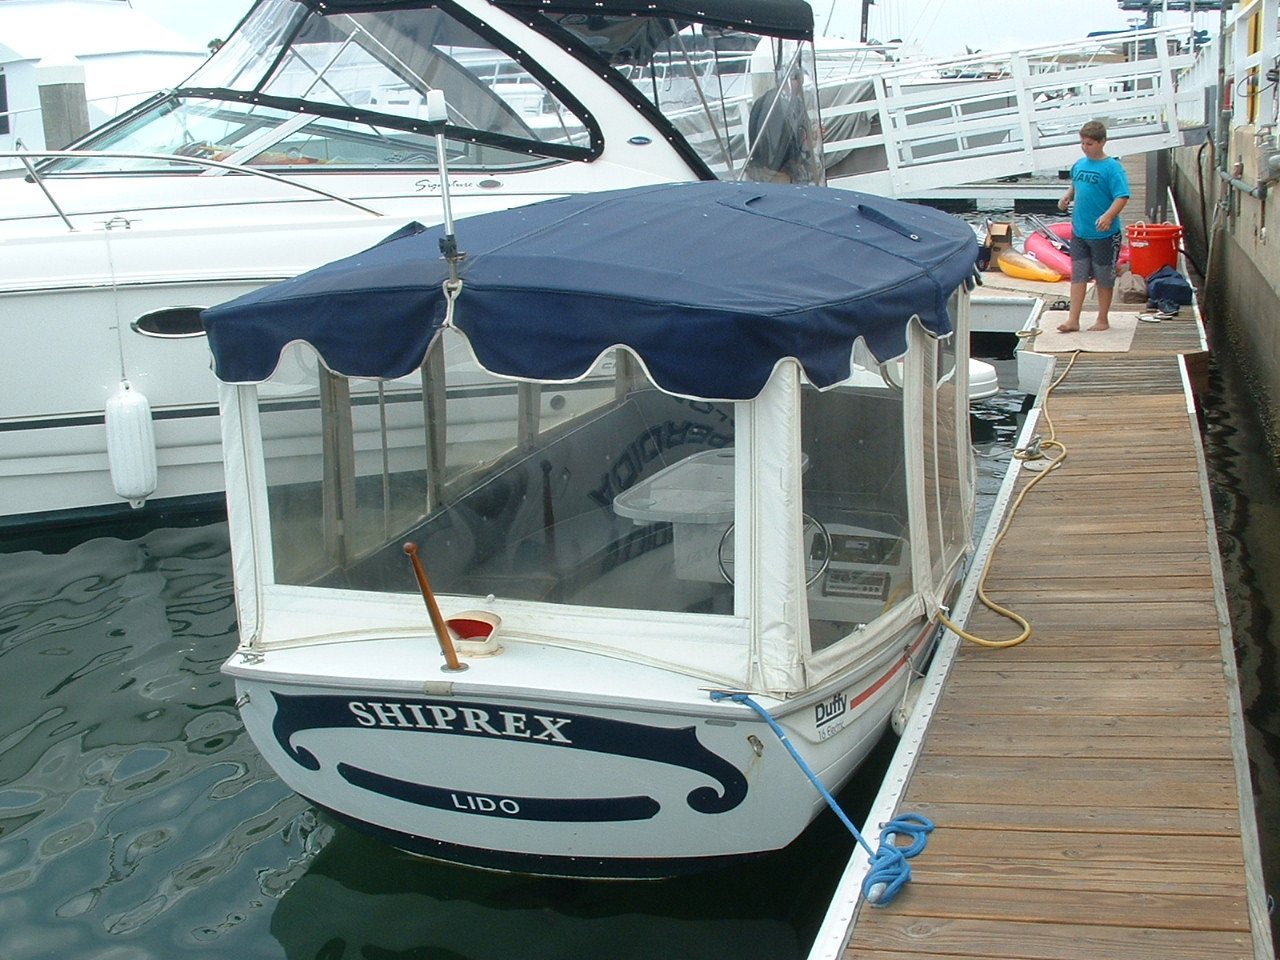 Used Duffy Electric Boats 714 916 0200 Or Boseyachts Mac